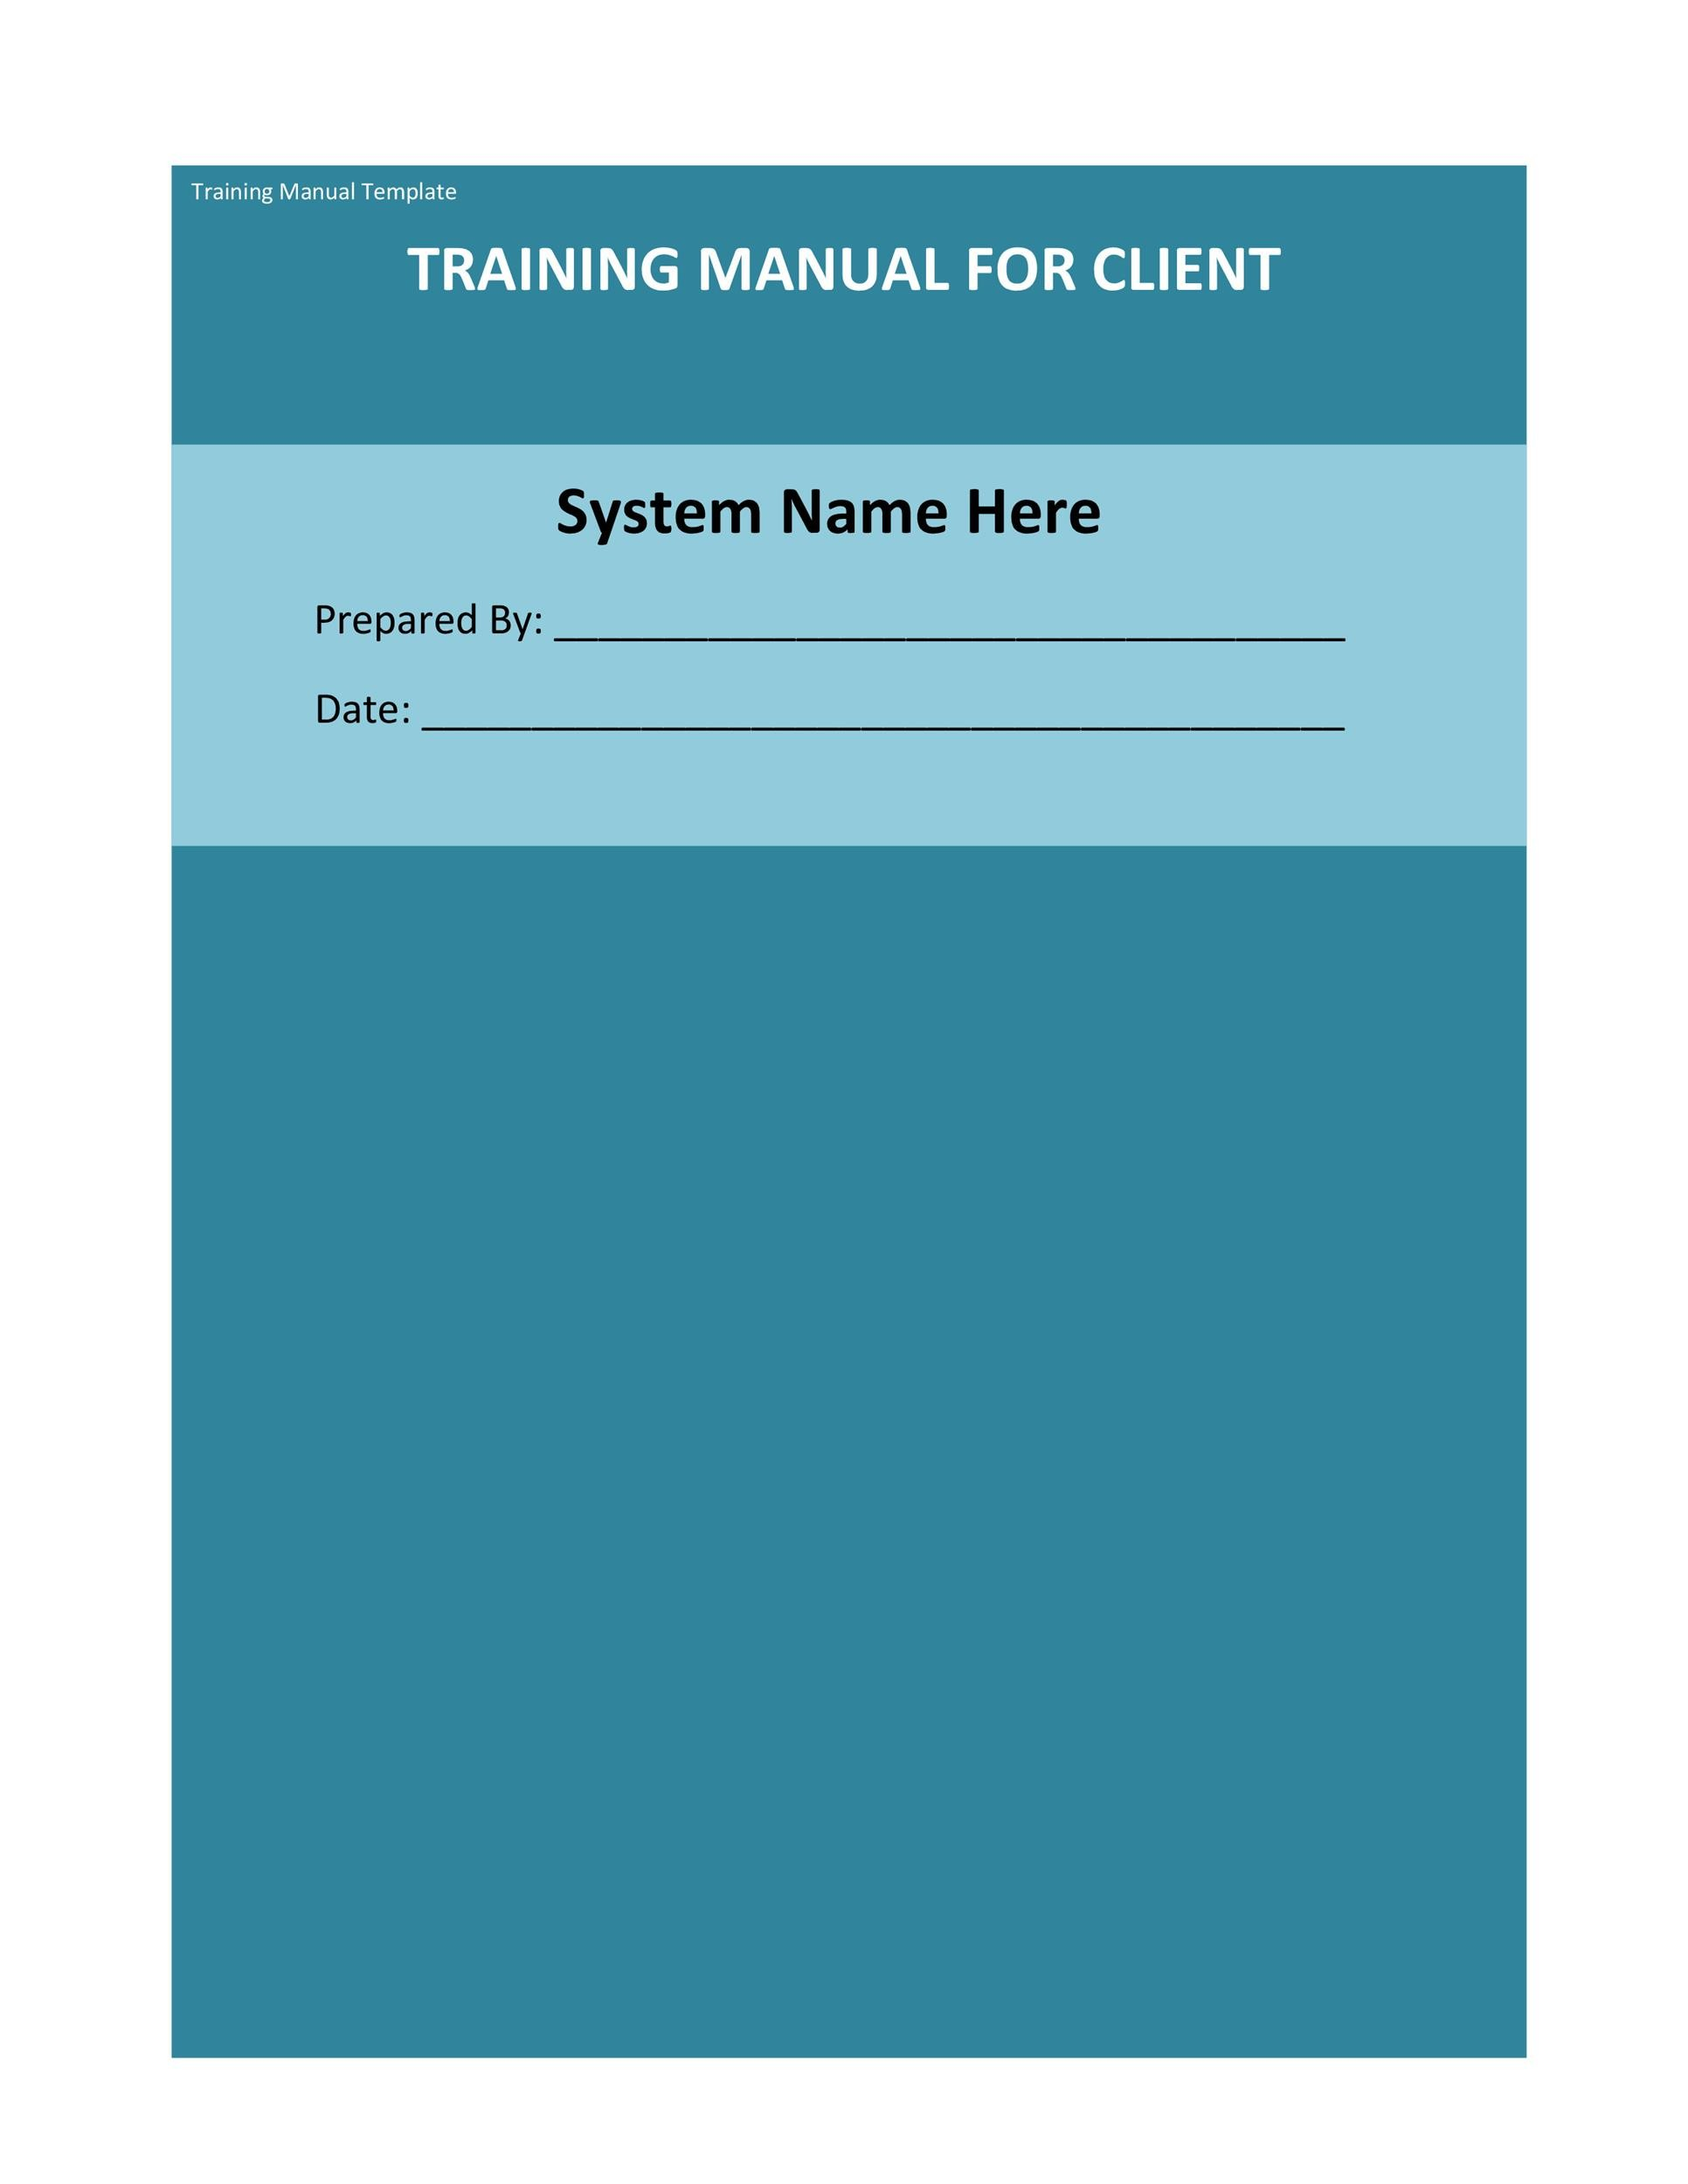 Printable Training Manual Template 06  Free Training Manual Templates